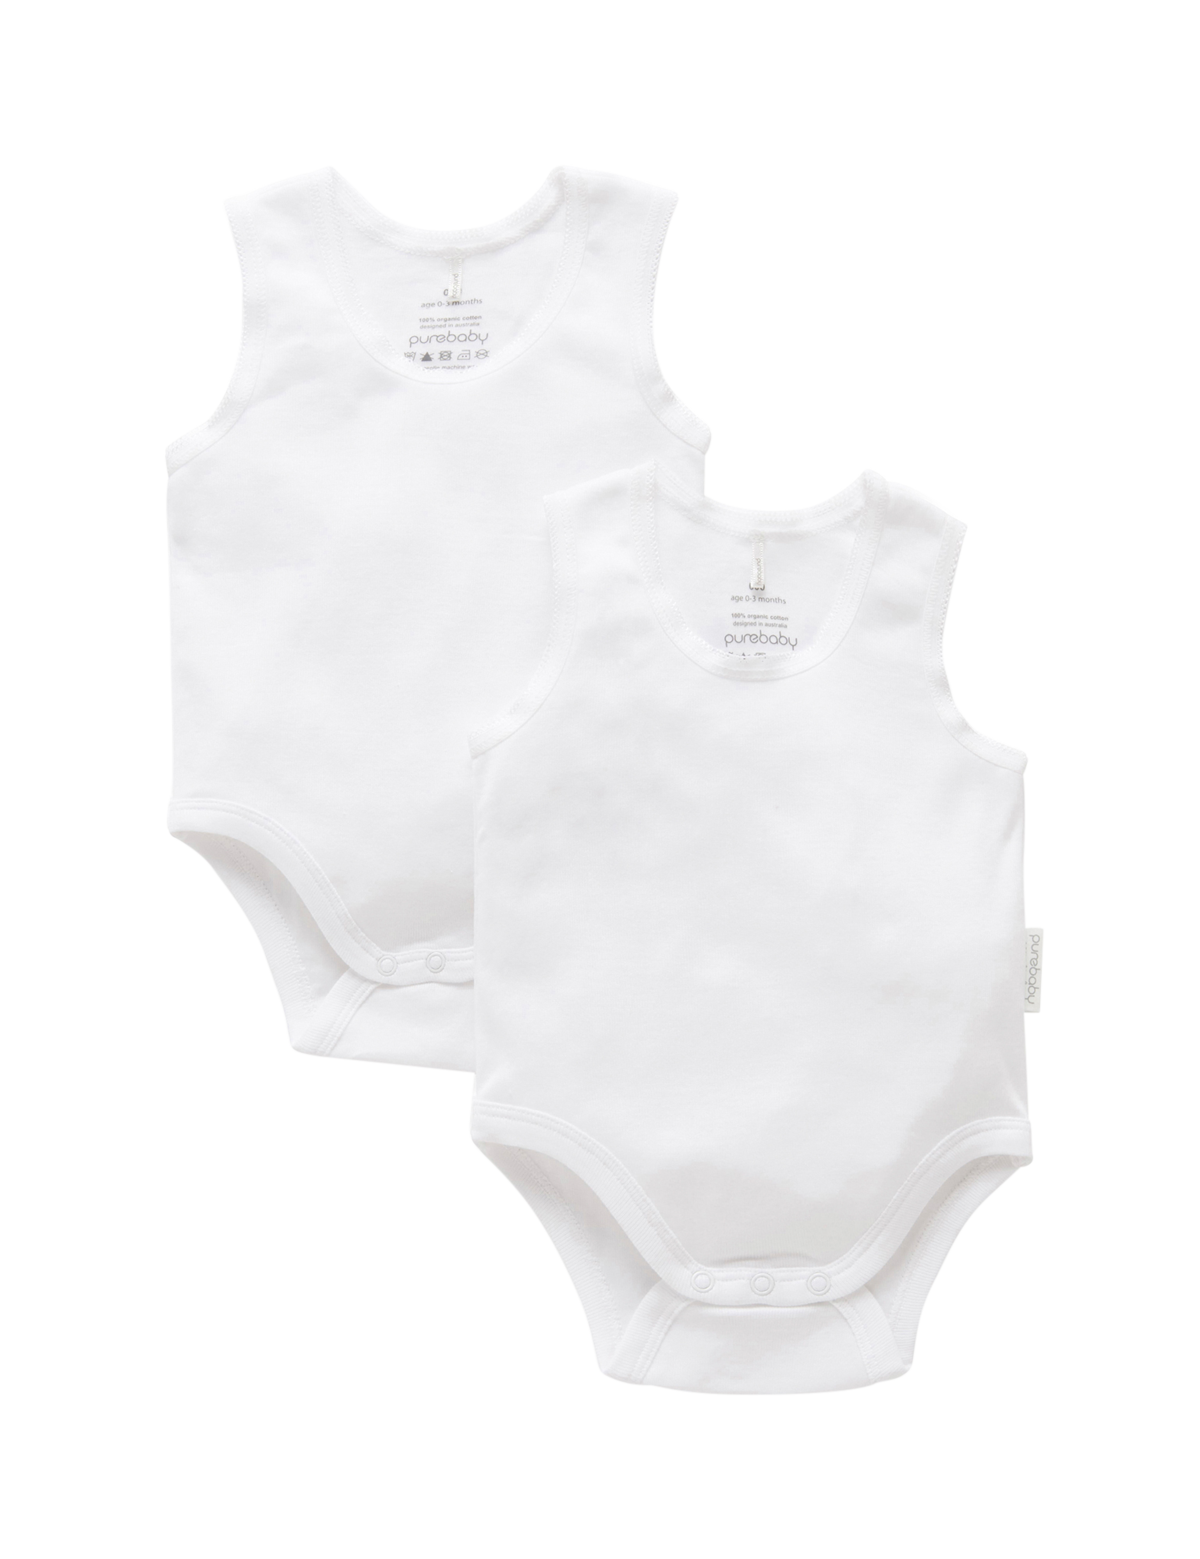 Pure Baby Ribbed Body Suit (2 Pack